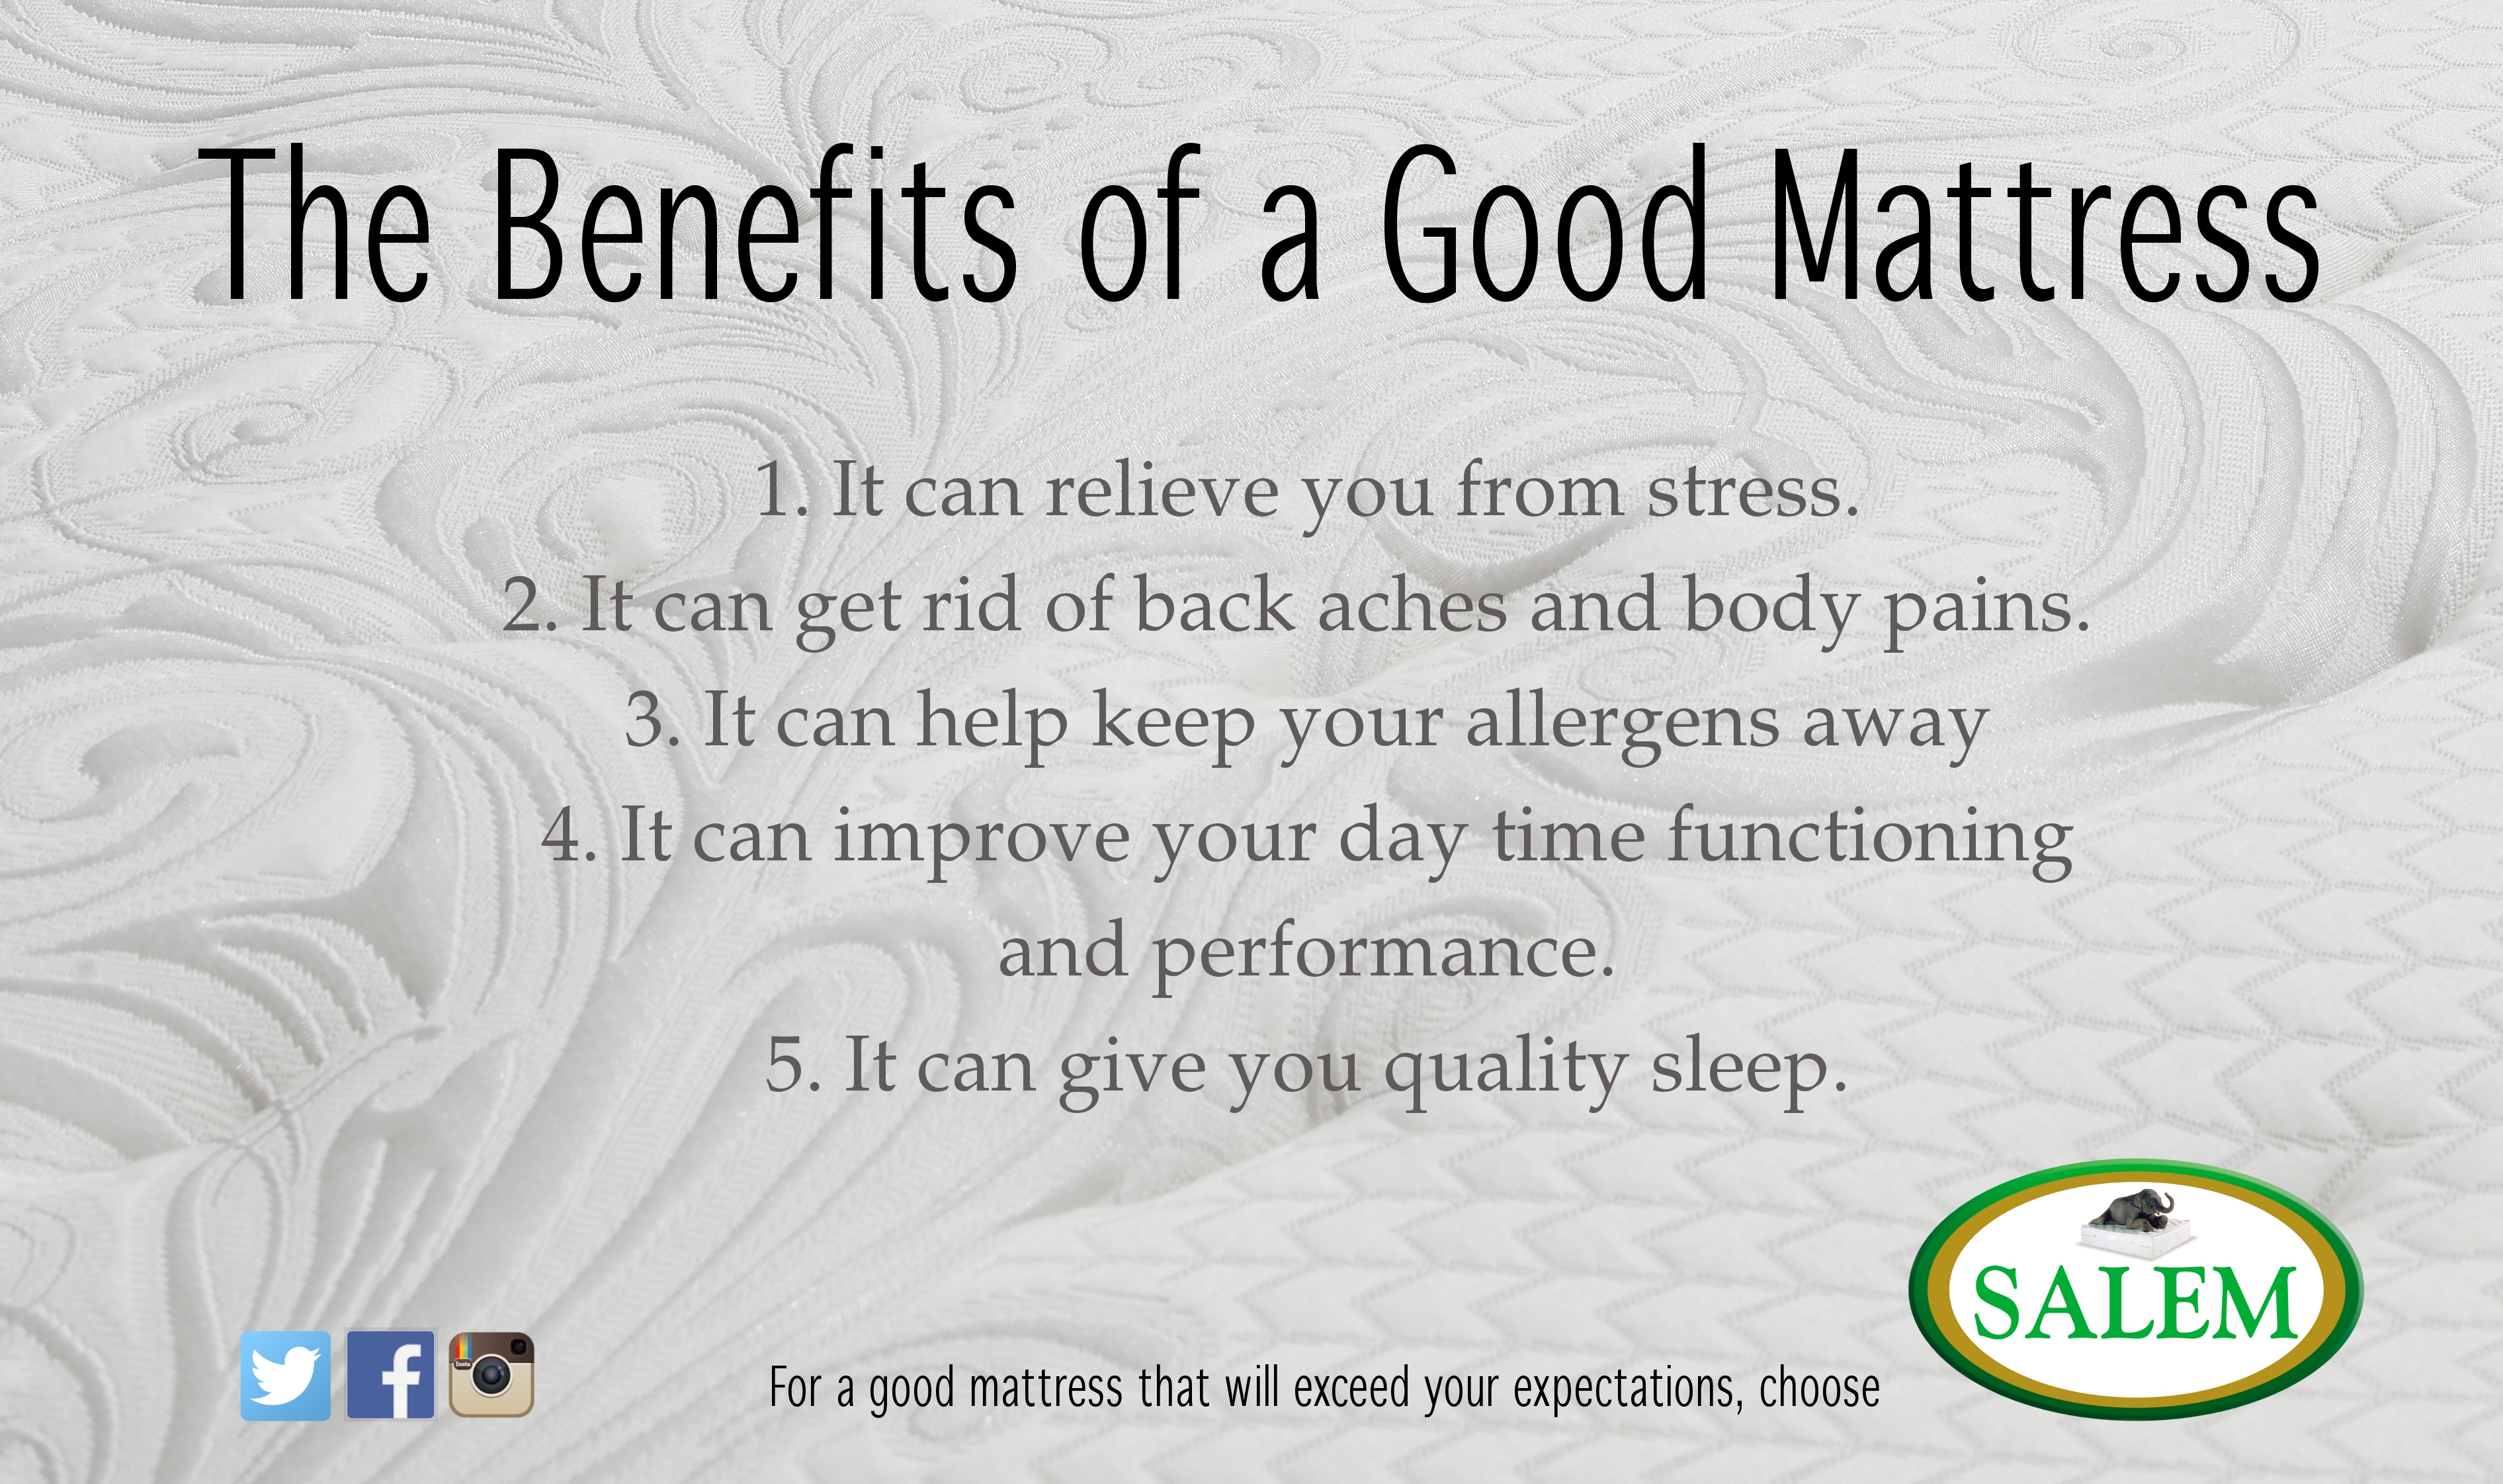 salem beds benefits of good mattress